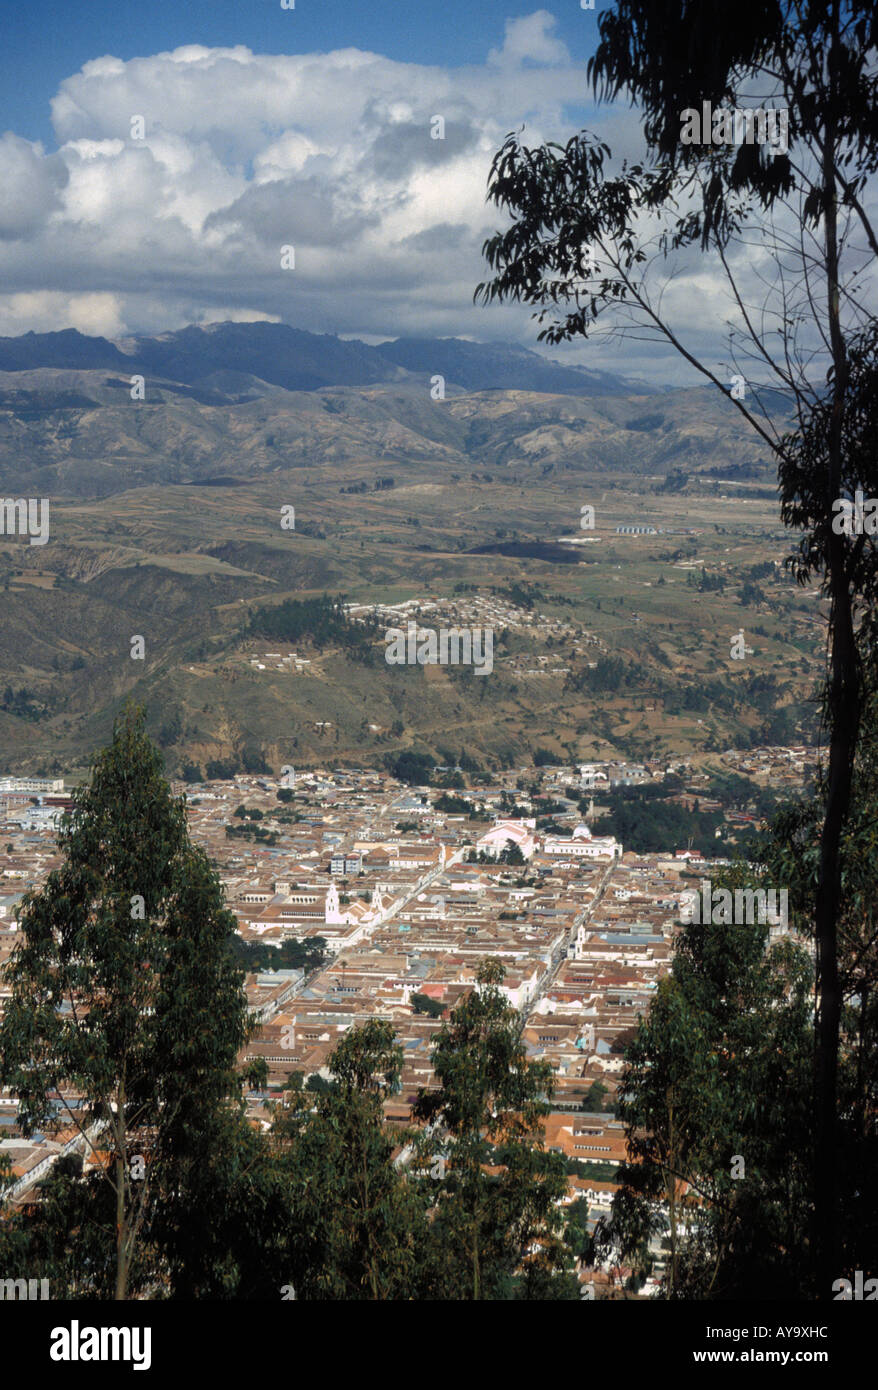 The city of Sucre Stock Photo